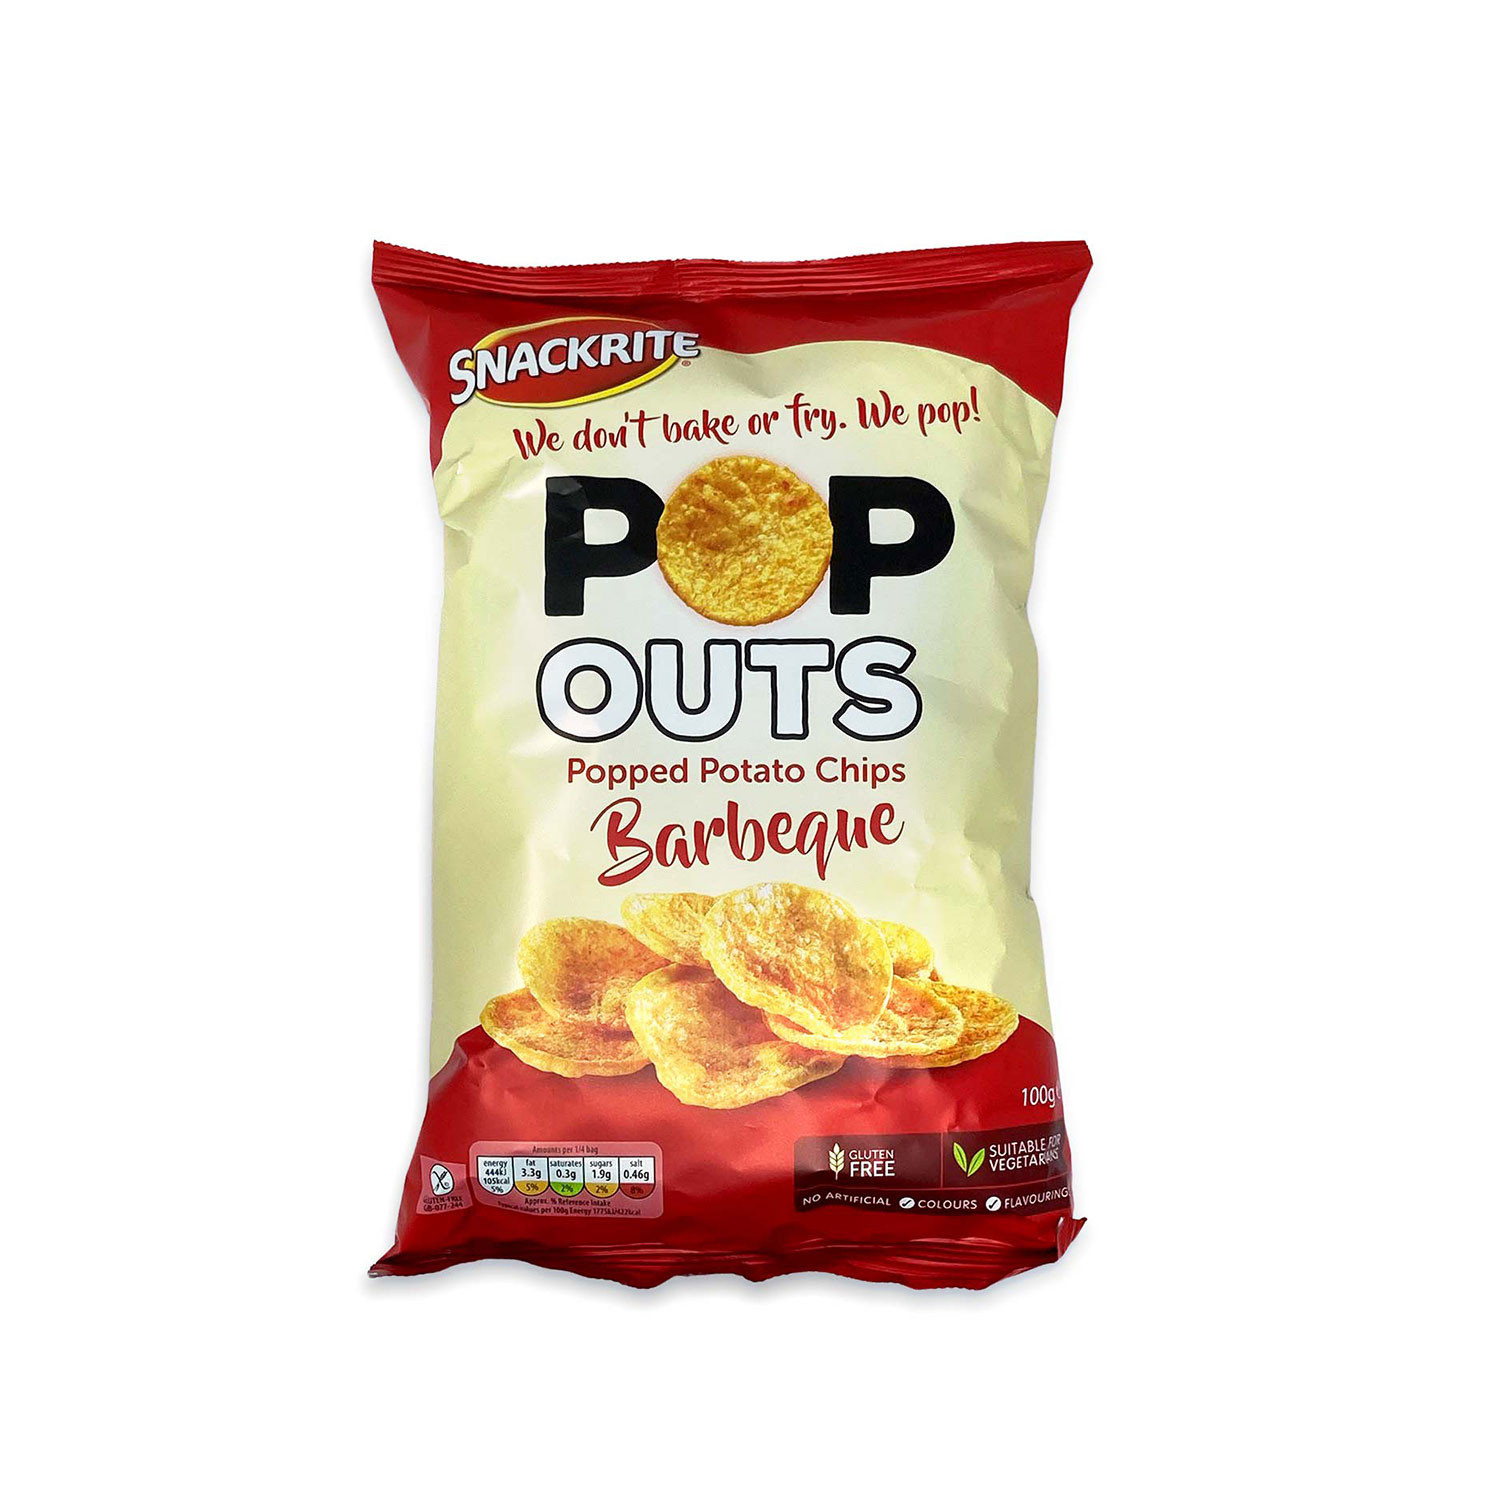 Pop Outs Popped Potato Chips BBQ